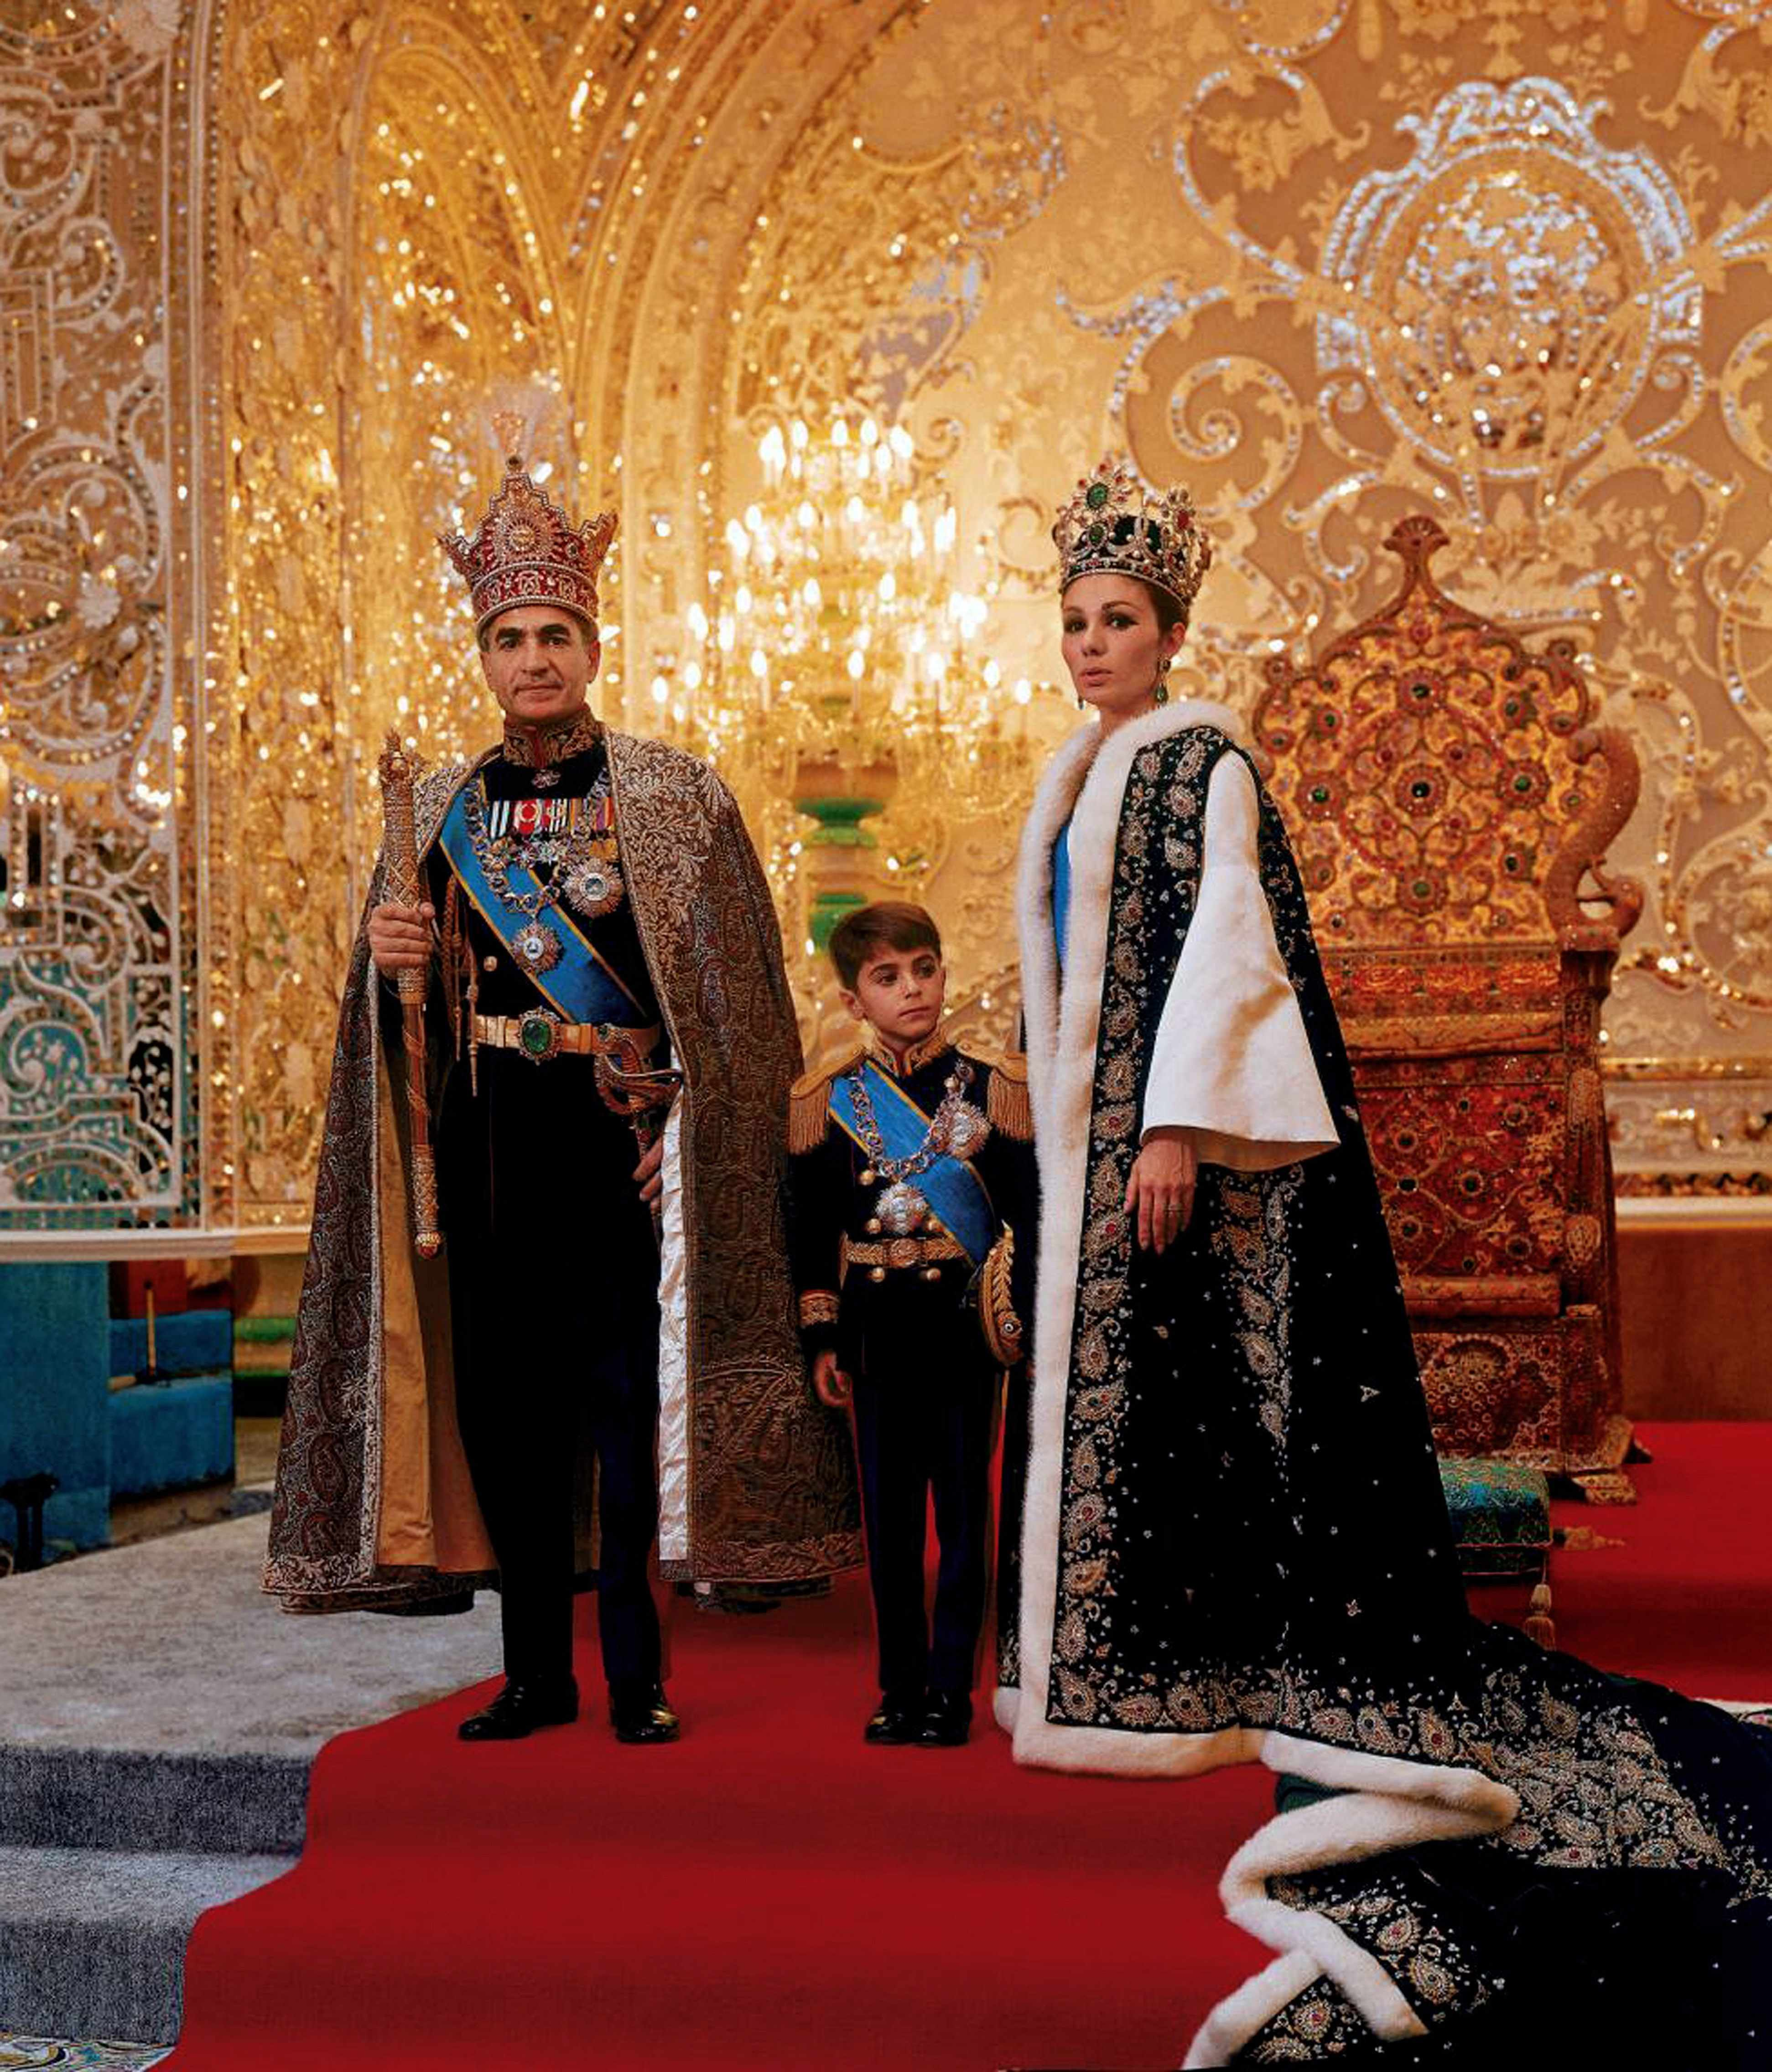 Mohammad Reza Shah Pahlavi, last Shah of Iran, pictured in 1967 with his third wife, Farah Diba, and their son Reza. His attempted reforms during his final years in power alienated many of his nation's people. (Photo by Universal History Archive/Getty Images)